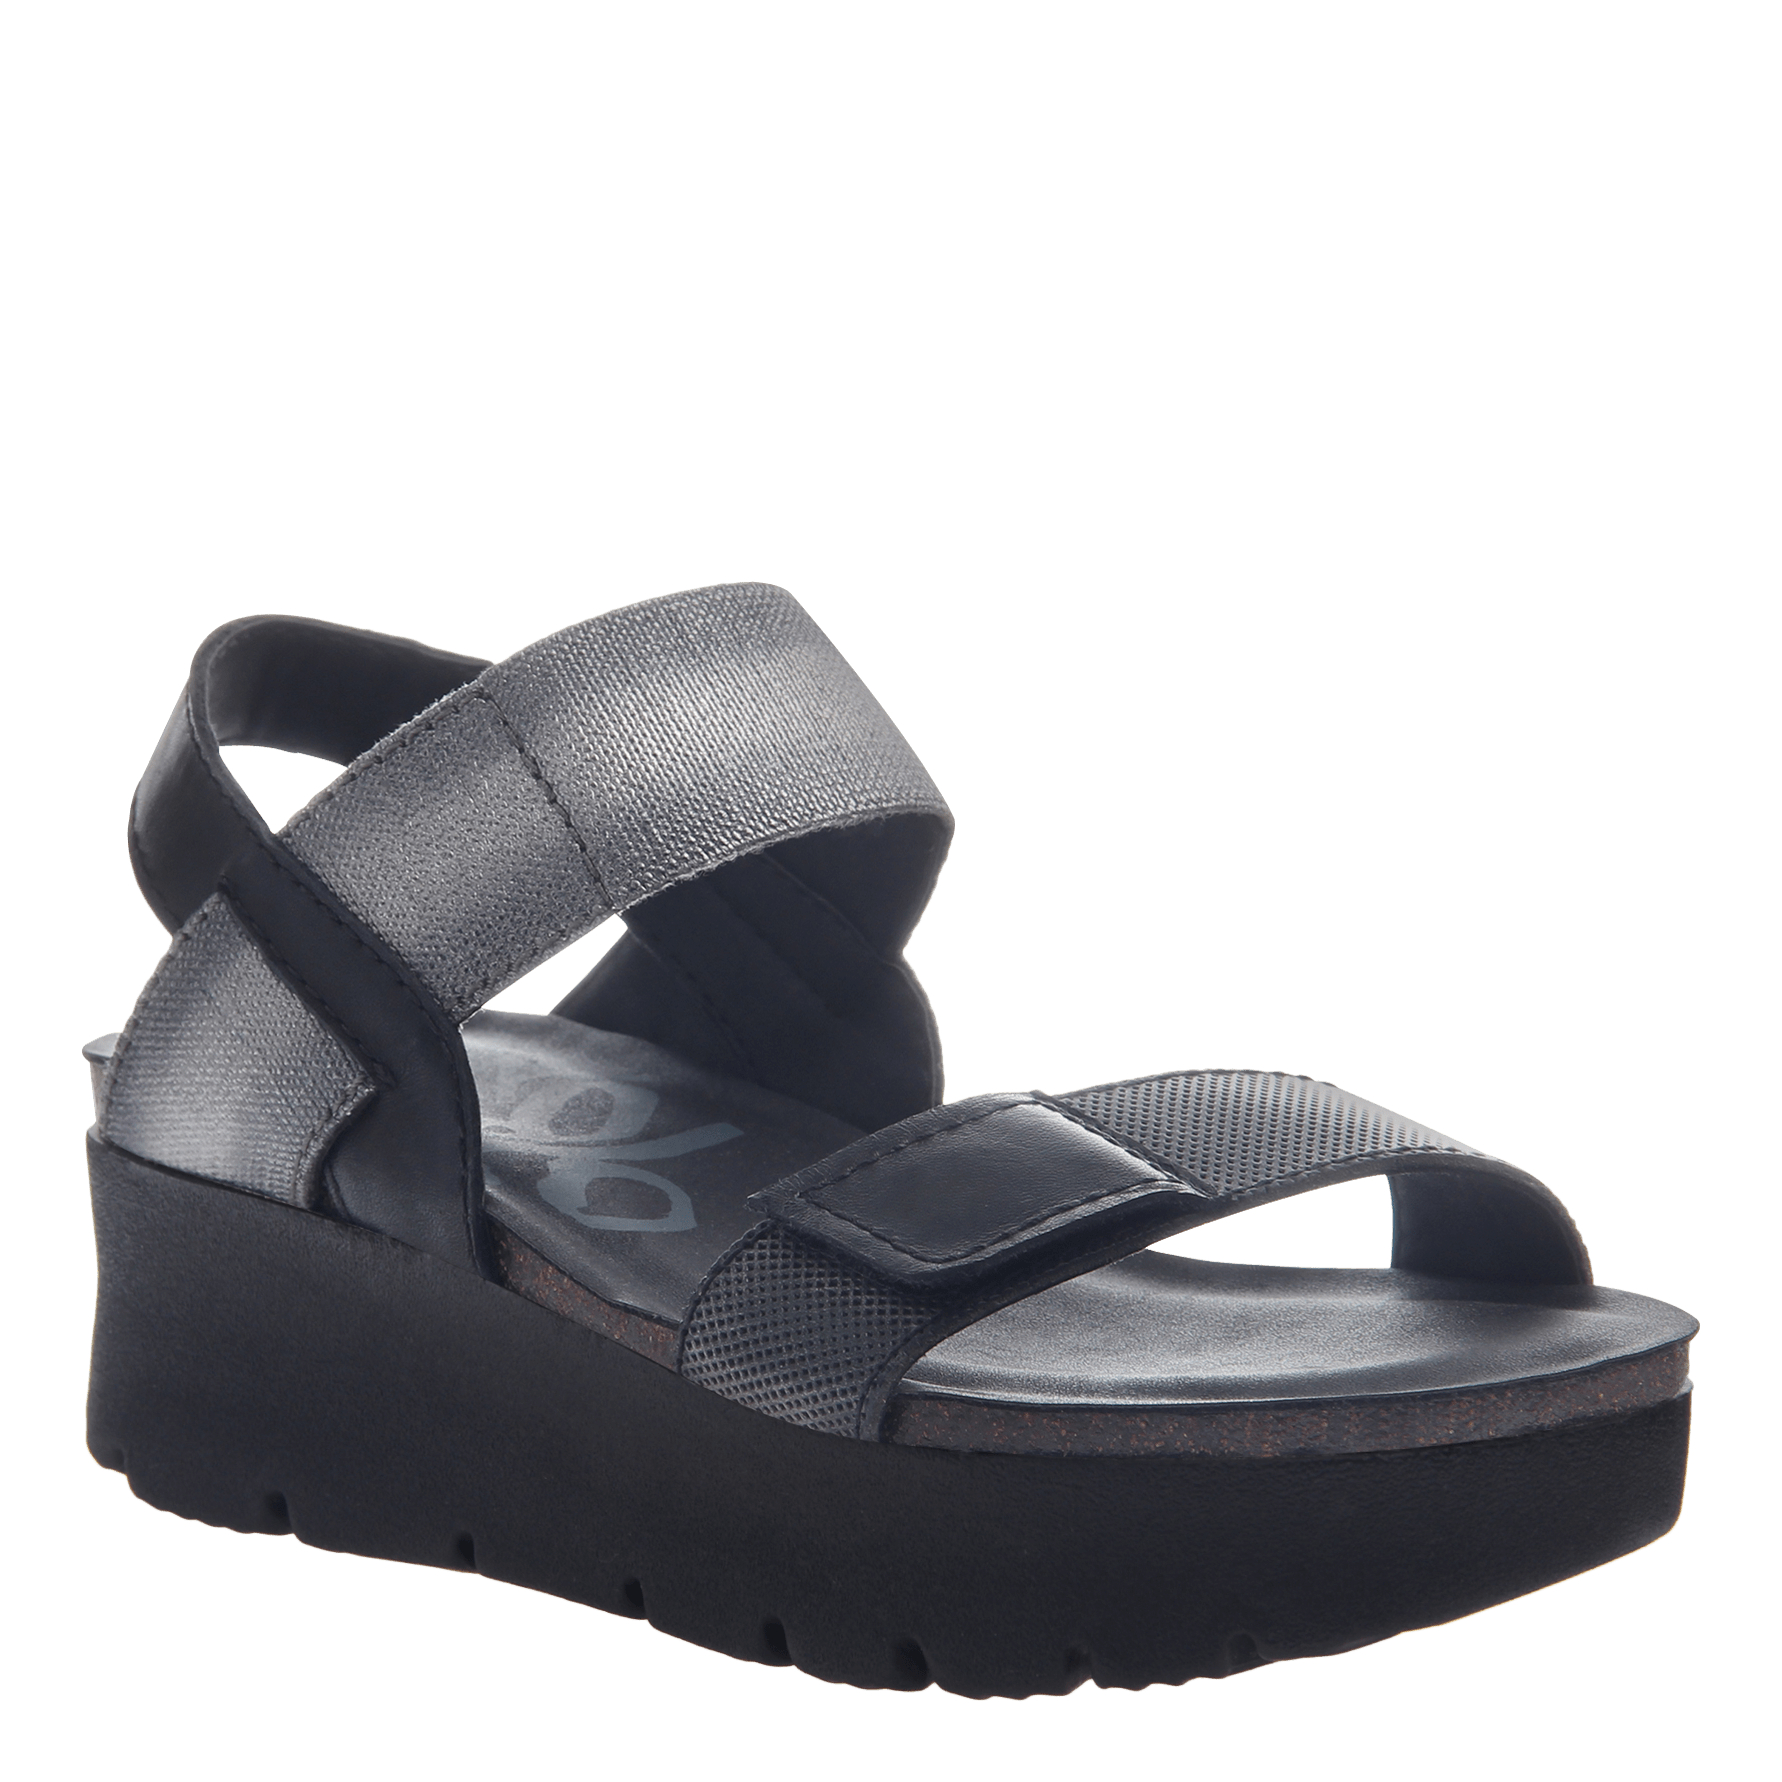 By Nova Otbt In Black W0pxnn8ok Sandalswomen's Wedge Shoes 2D9WHIEY